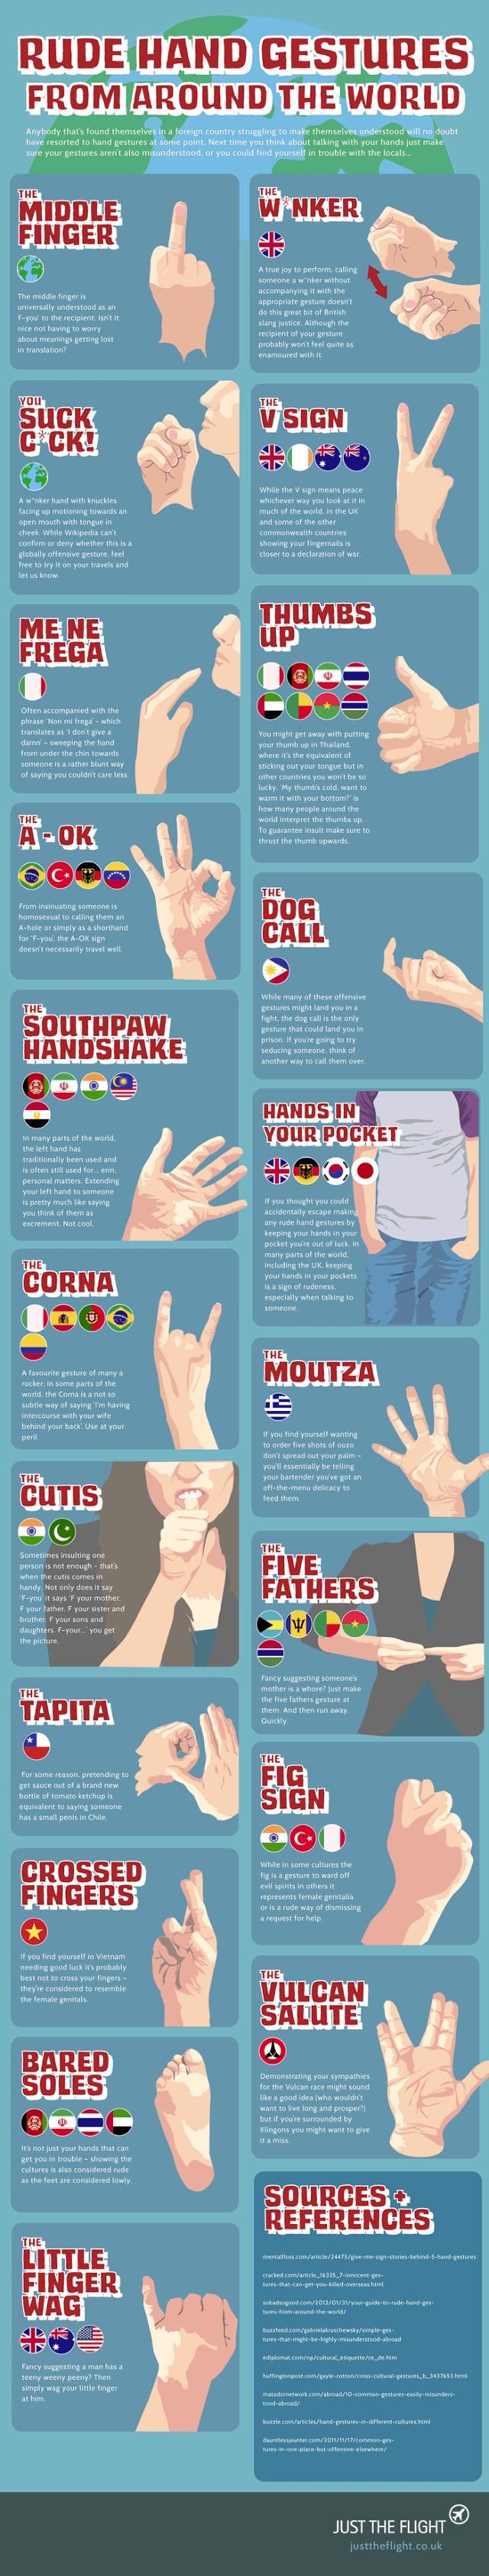 How to offend people in different countries. Hshaha.   And to think that almost every Indian child learns the cutis as a sign to say they aren't speaking to the other person and not what this pin says.   It's interesting.